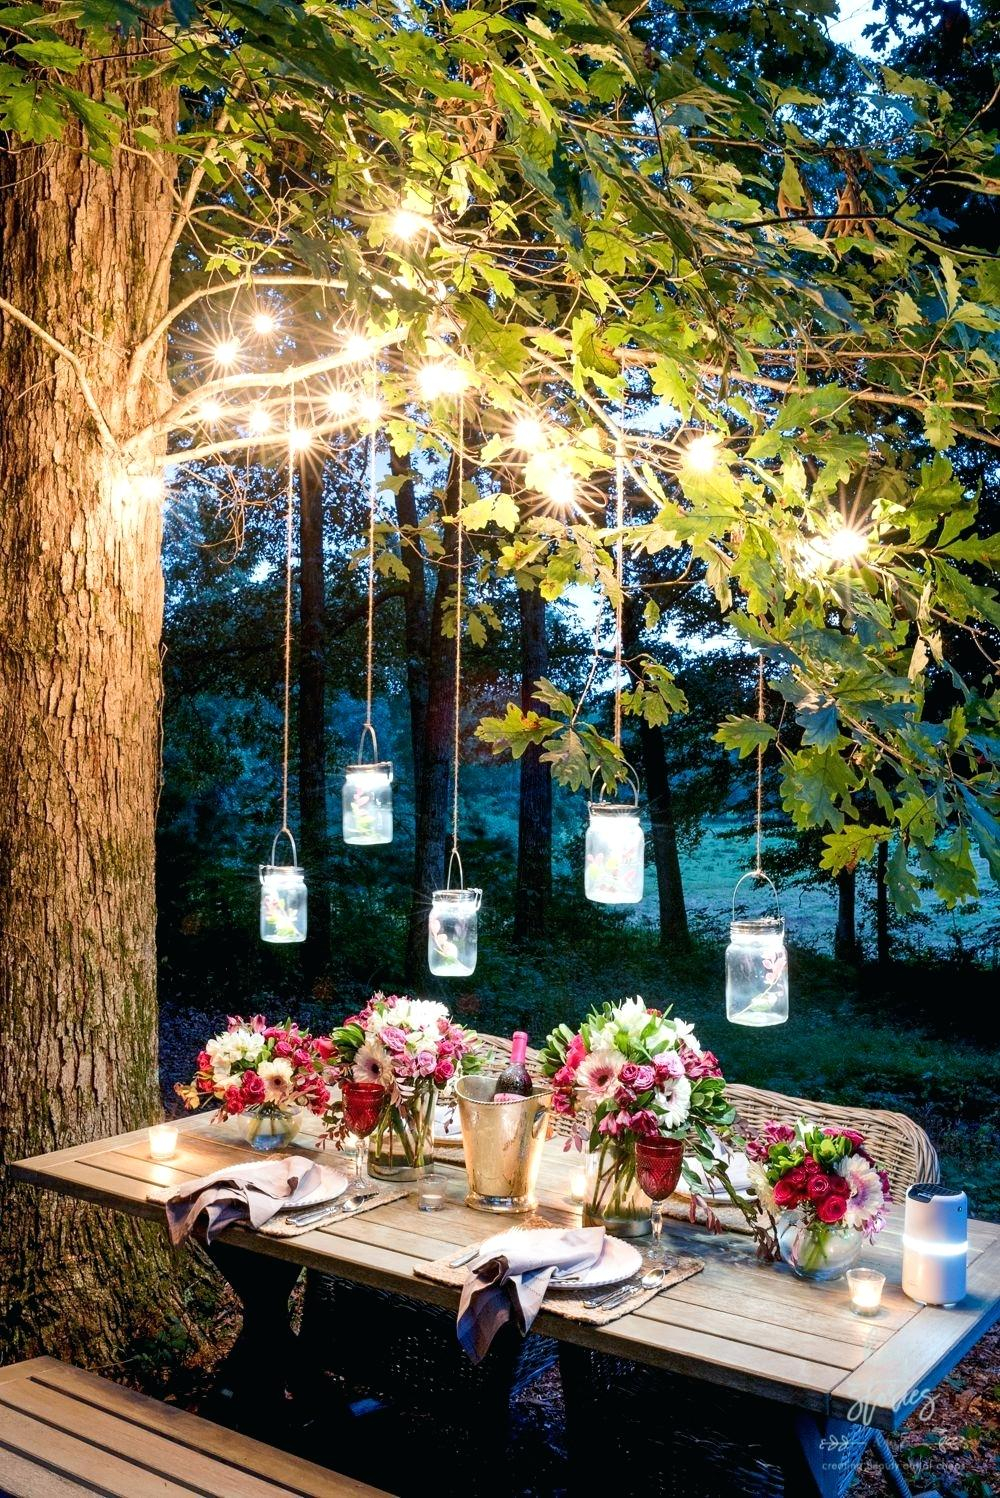 Outdoor Trellis Lighting Ideas Patio String Lights Trees Cofoundrsco throughout 15 Clever Ways How to Makeover Backyard String Lighting Ideas